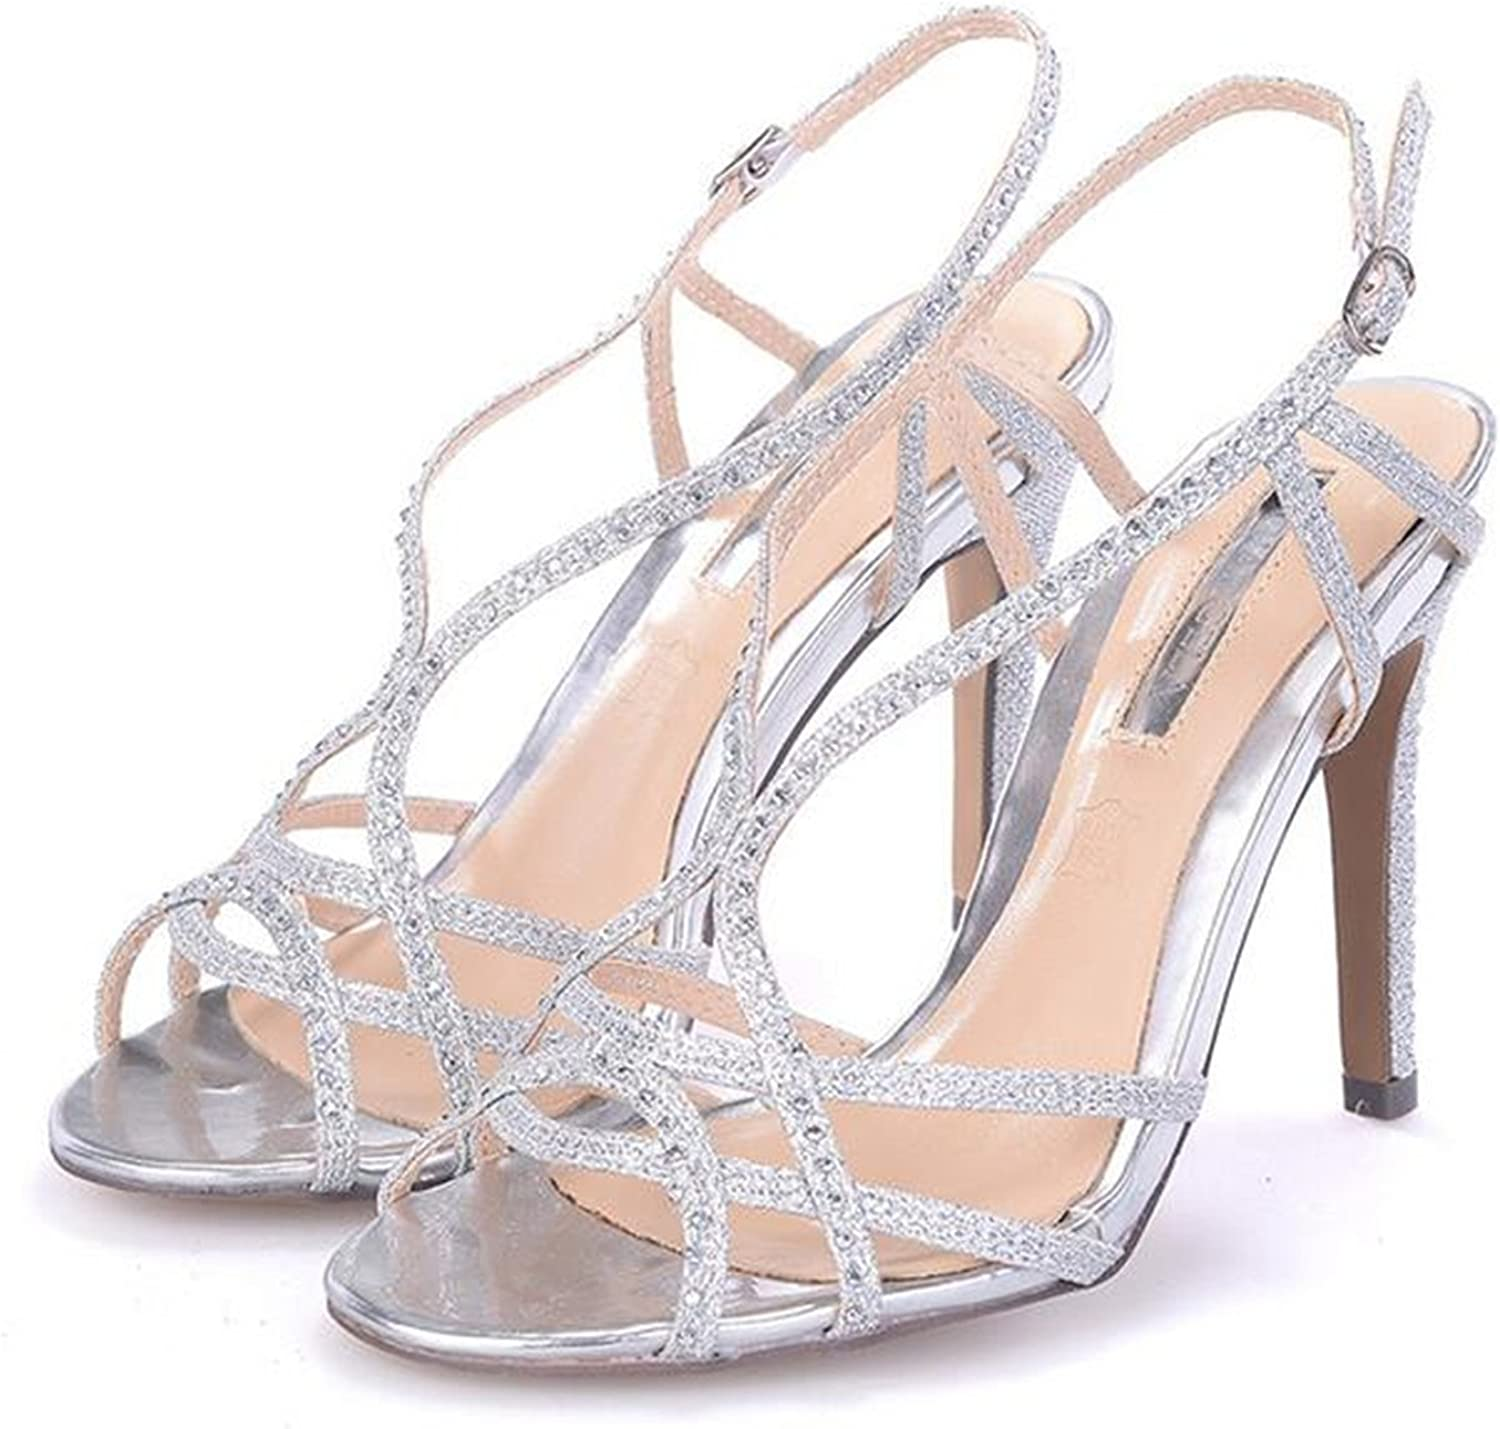 Robert Westbrook shoes Woman Strappy High Heel Sandals Women Ankle Strap Sandals gold Sandals Sandalias Silver 10